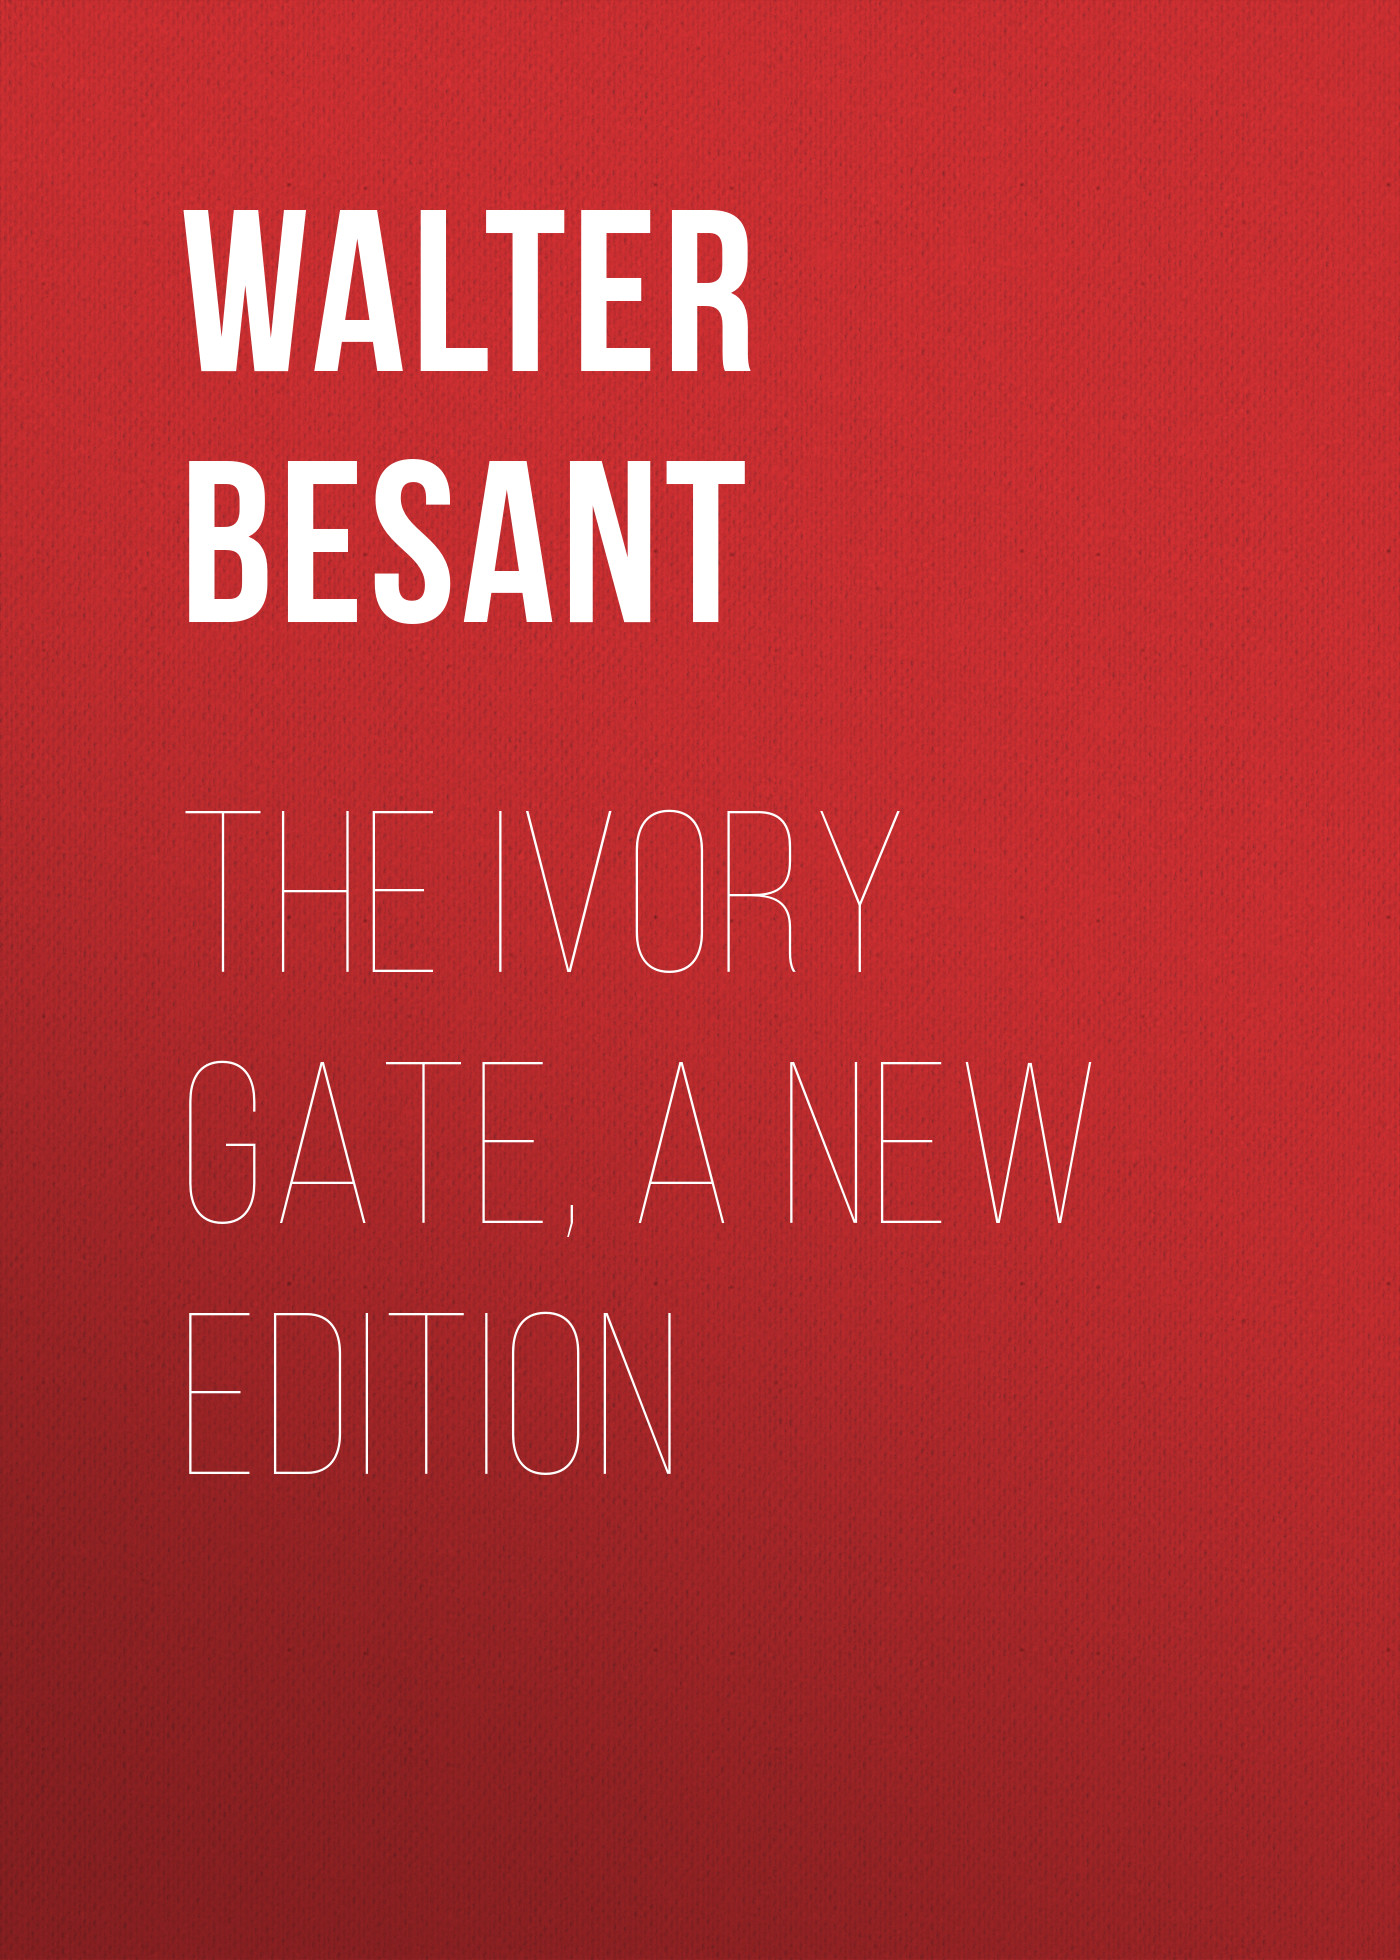 Walter Besant The Ivory Gate, a new edition walter besant the lady of lynn